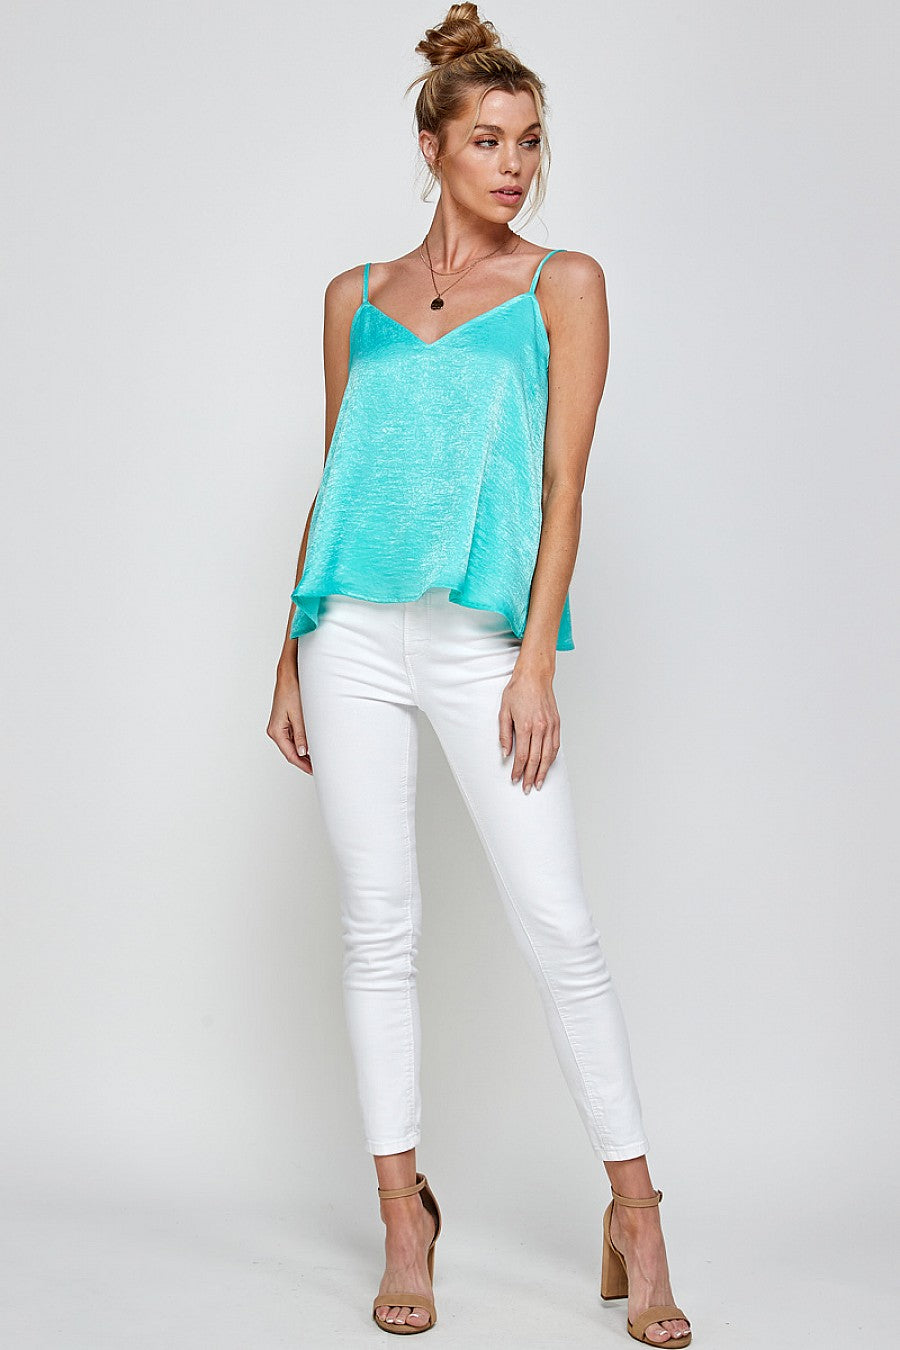 Warm Weather Cami in Seafoam Green